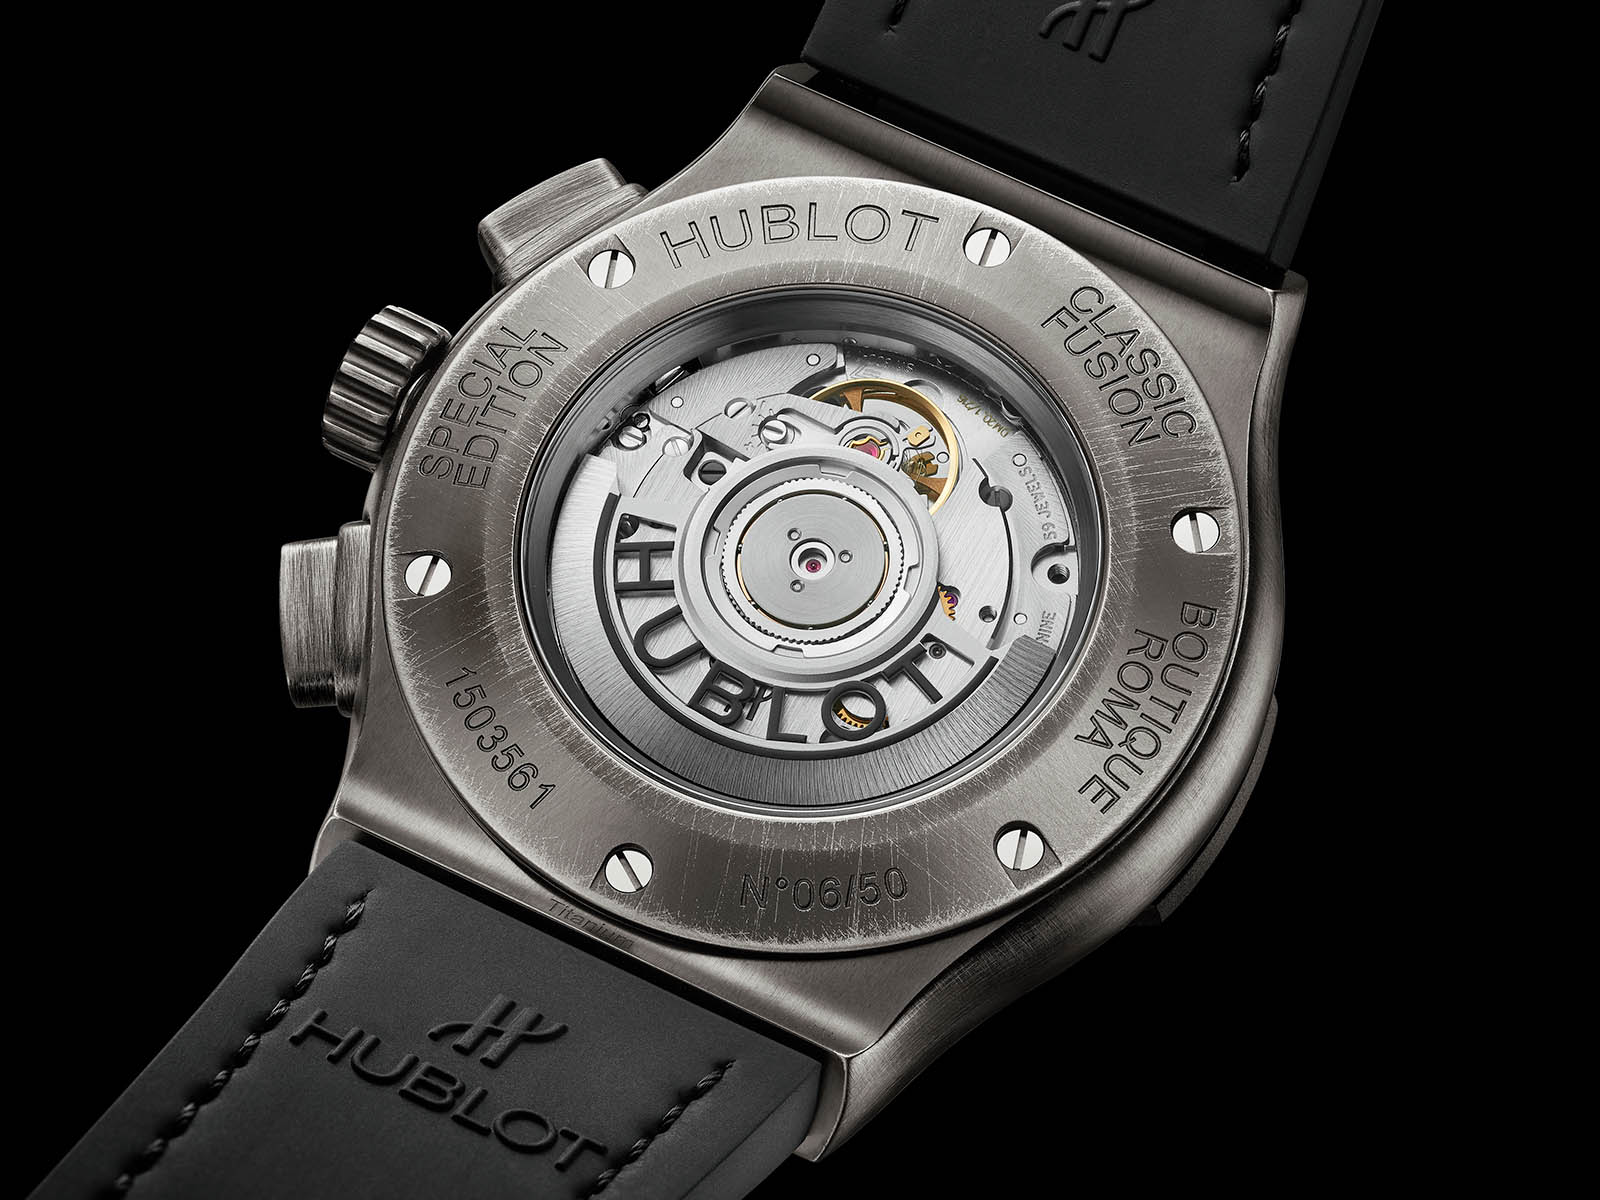 521-nx-4610-vr-rom20-hublot-classic-fusion-chronograph-special-edition-boutique-roma-8.jpg